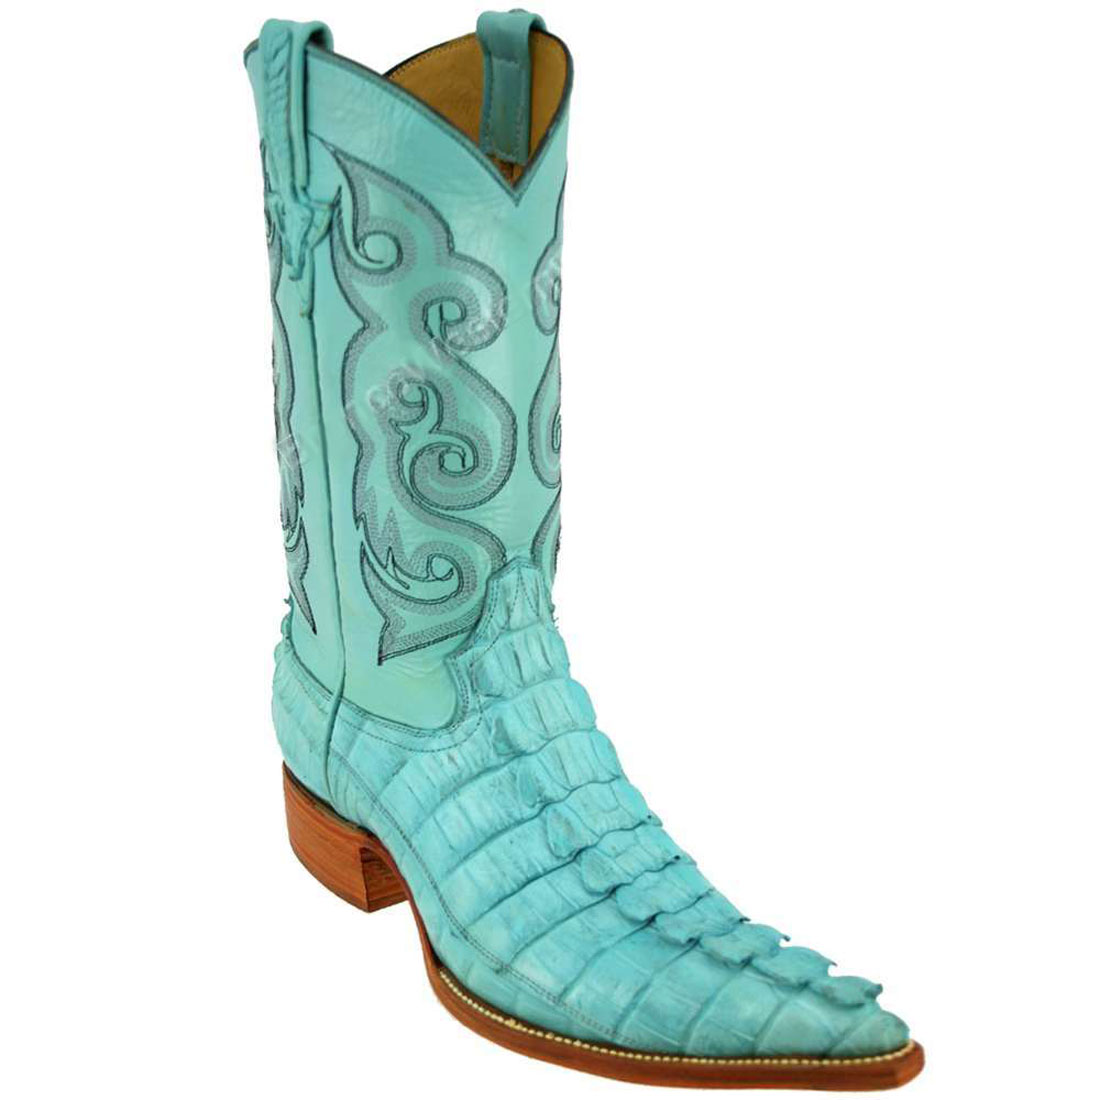 Bronco Men's Pastel Blue Nile Crocodile Tail Pointed Toe Boots